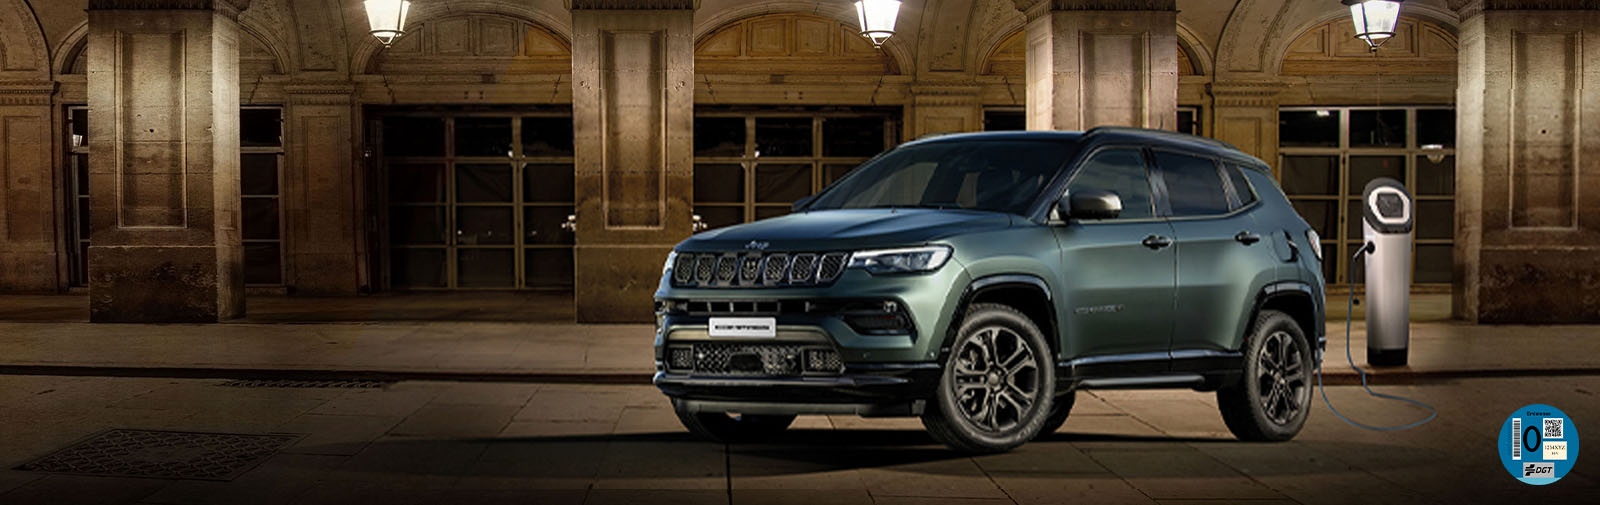 NUEVO JEEP® COMPASS 4xe LIMITED